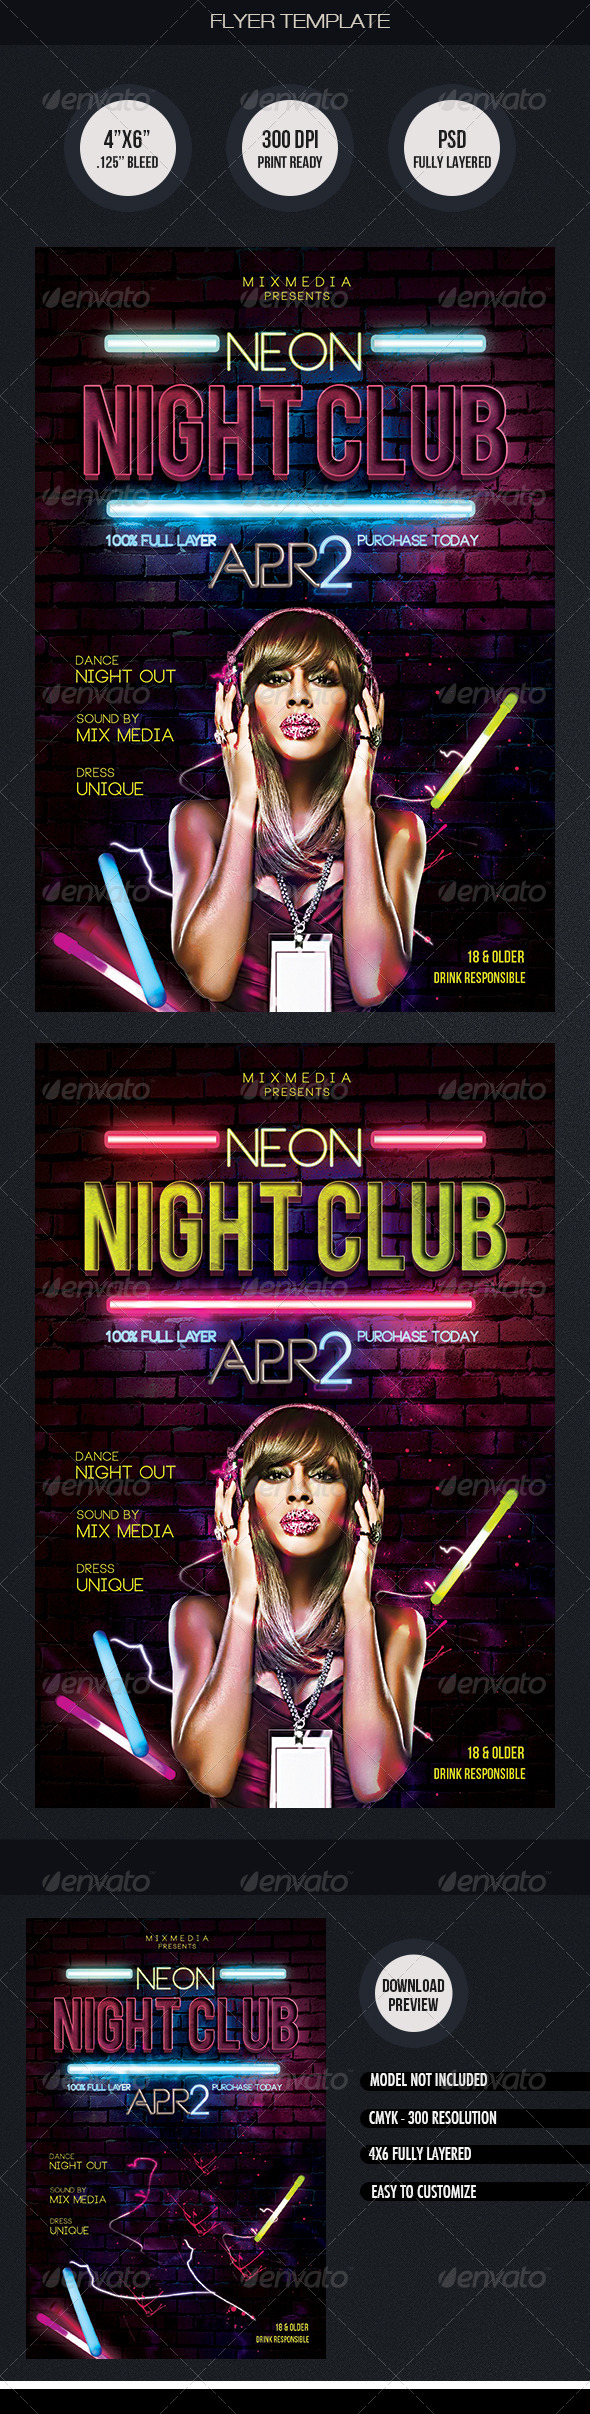 Neon Night Club Flyer Template - Clubs & Parties Events